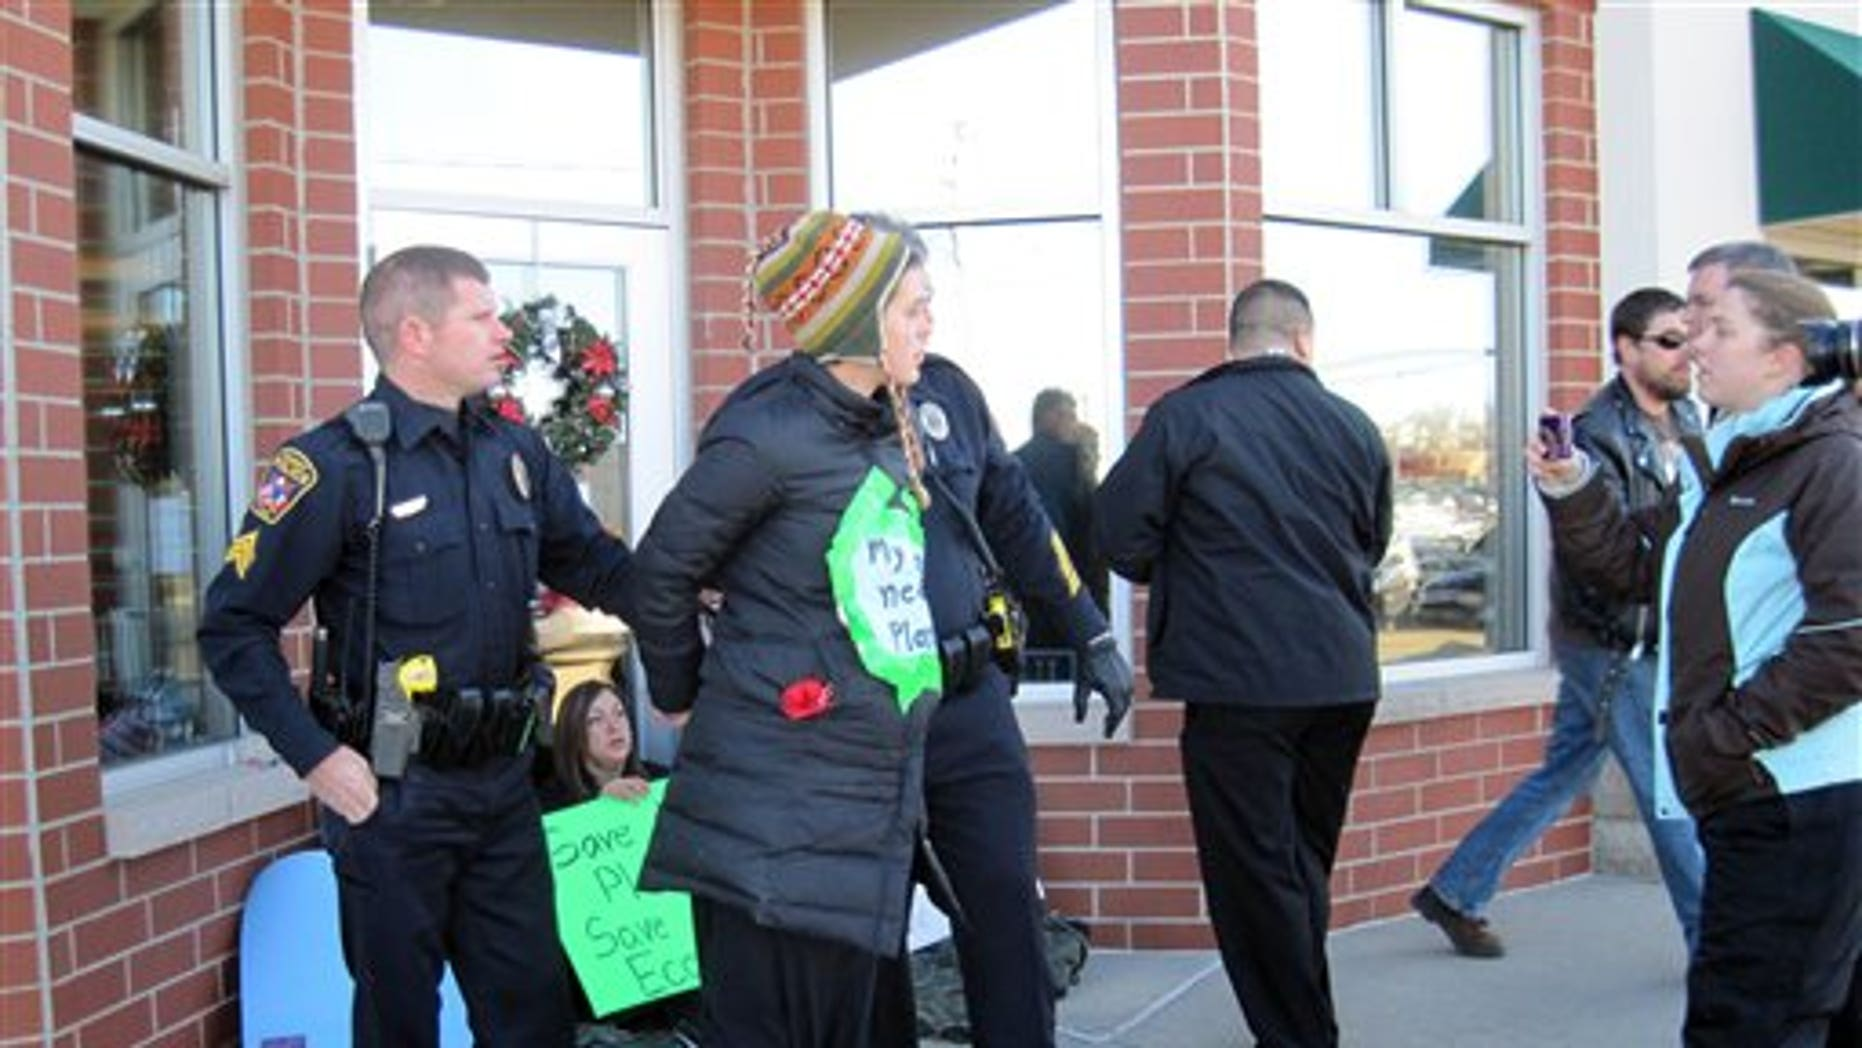 Dec. 29: Megan Felt, 24, is arrested while protesting Ron Paul's stance on the Environmental Protection Agency outside his Ankeny, Iowa, campaign office.